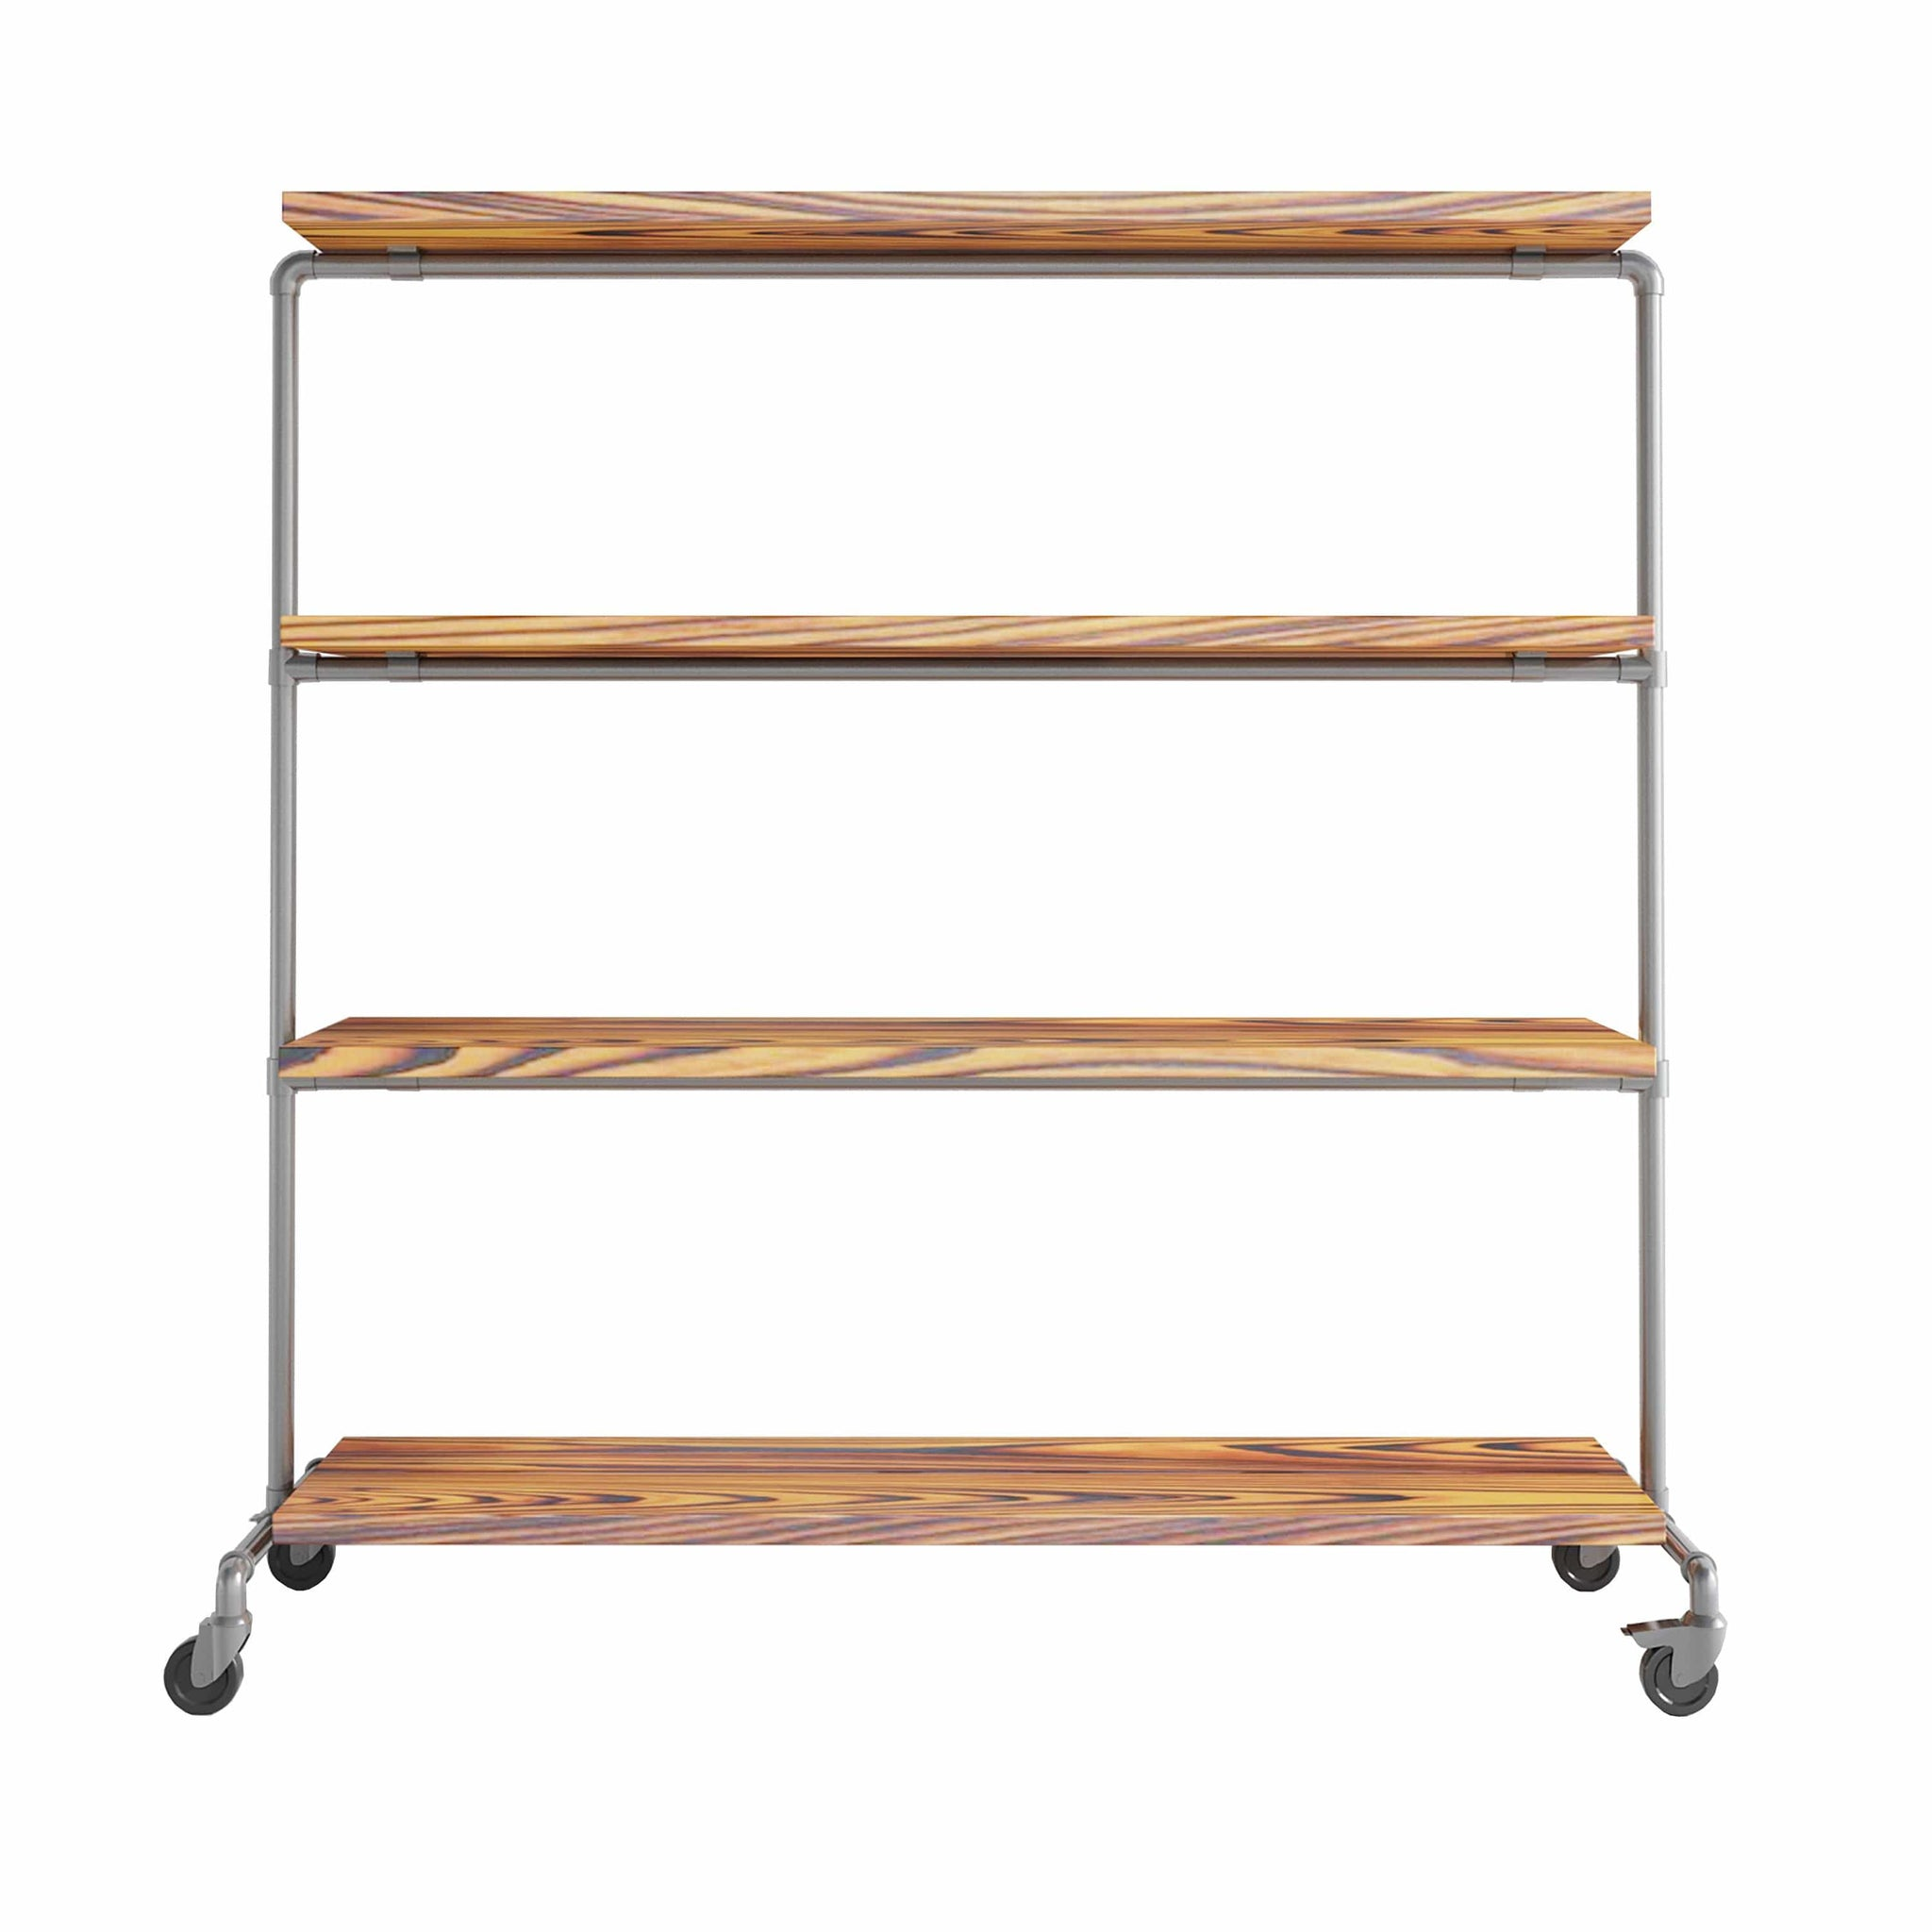 Shelf Roll Rullhylla - Ziito SE